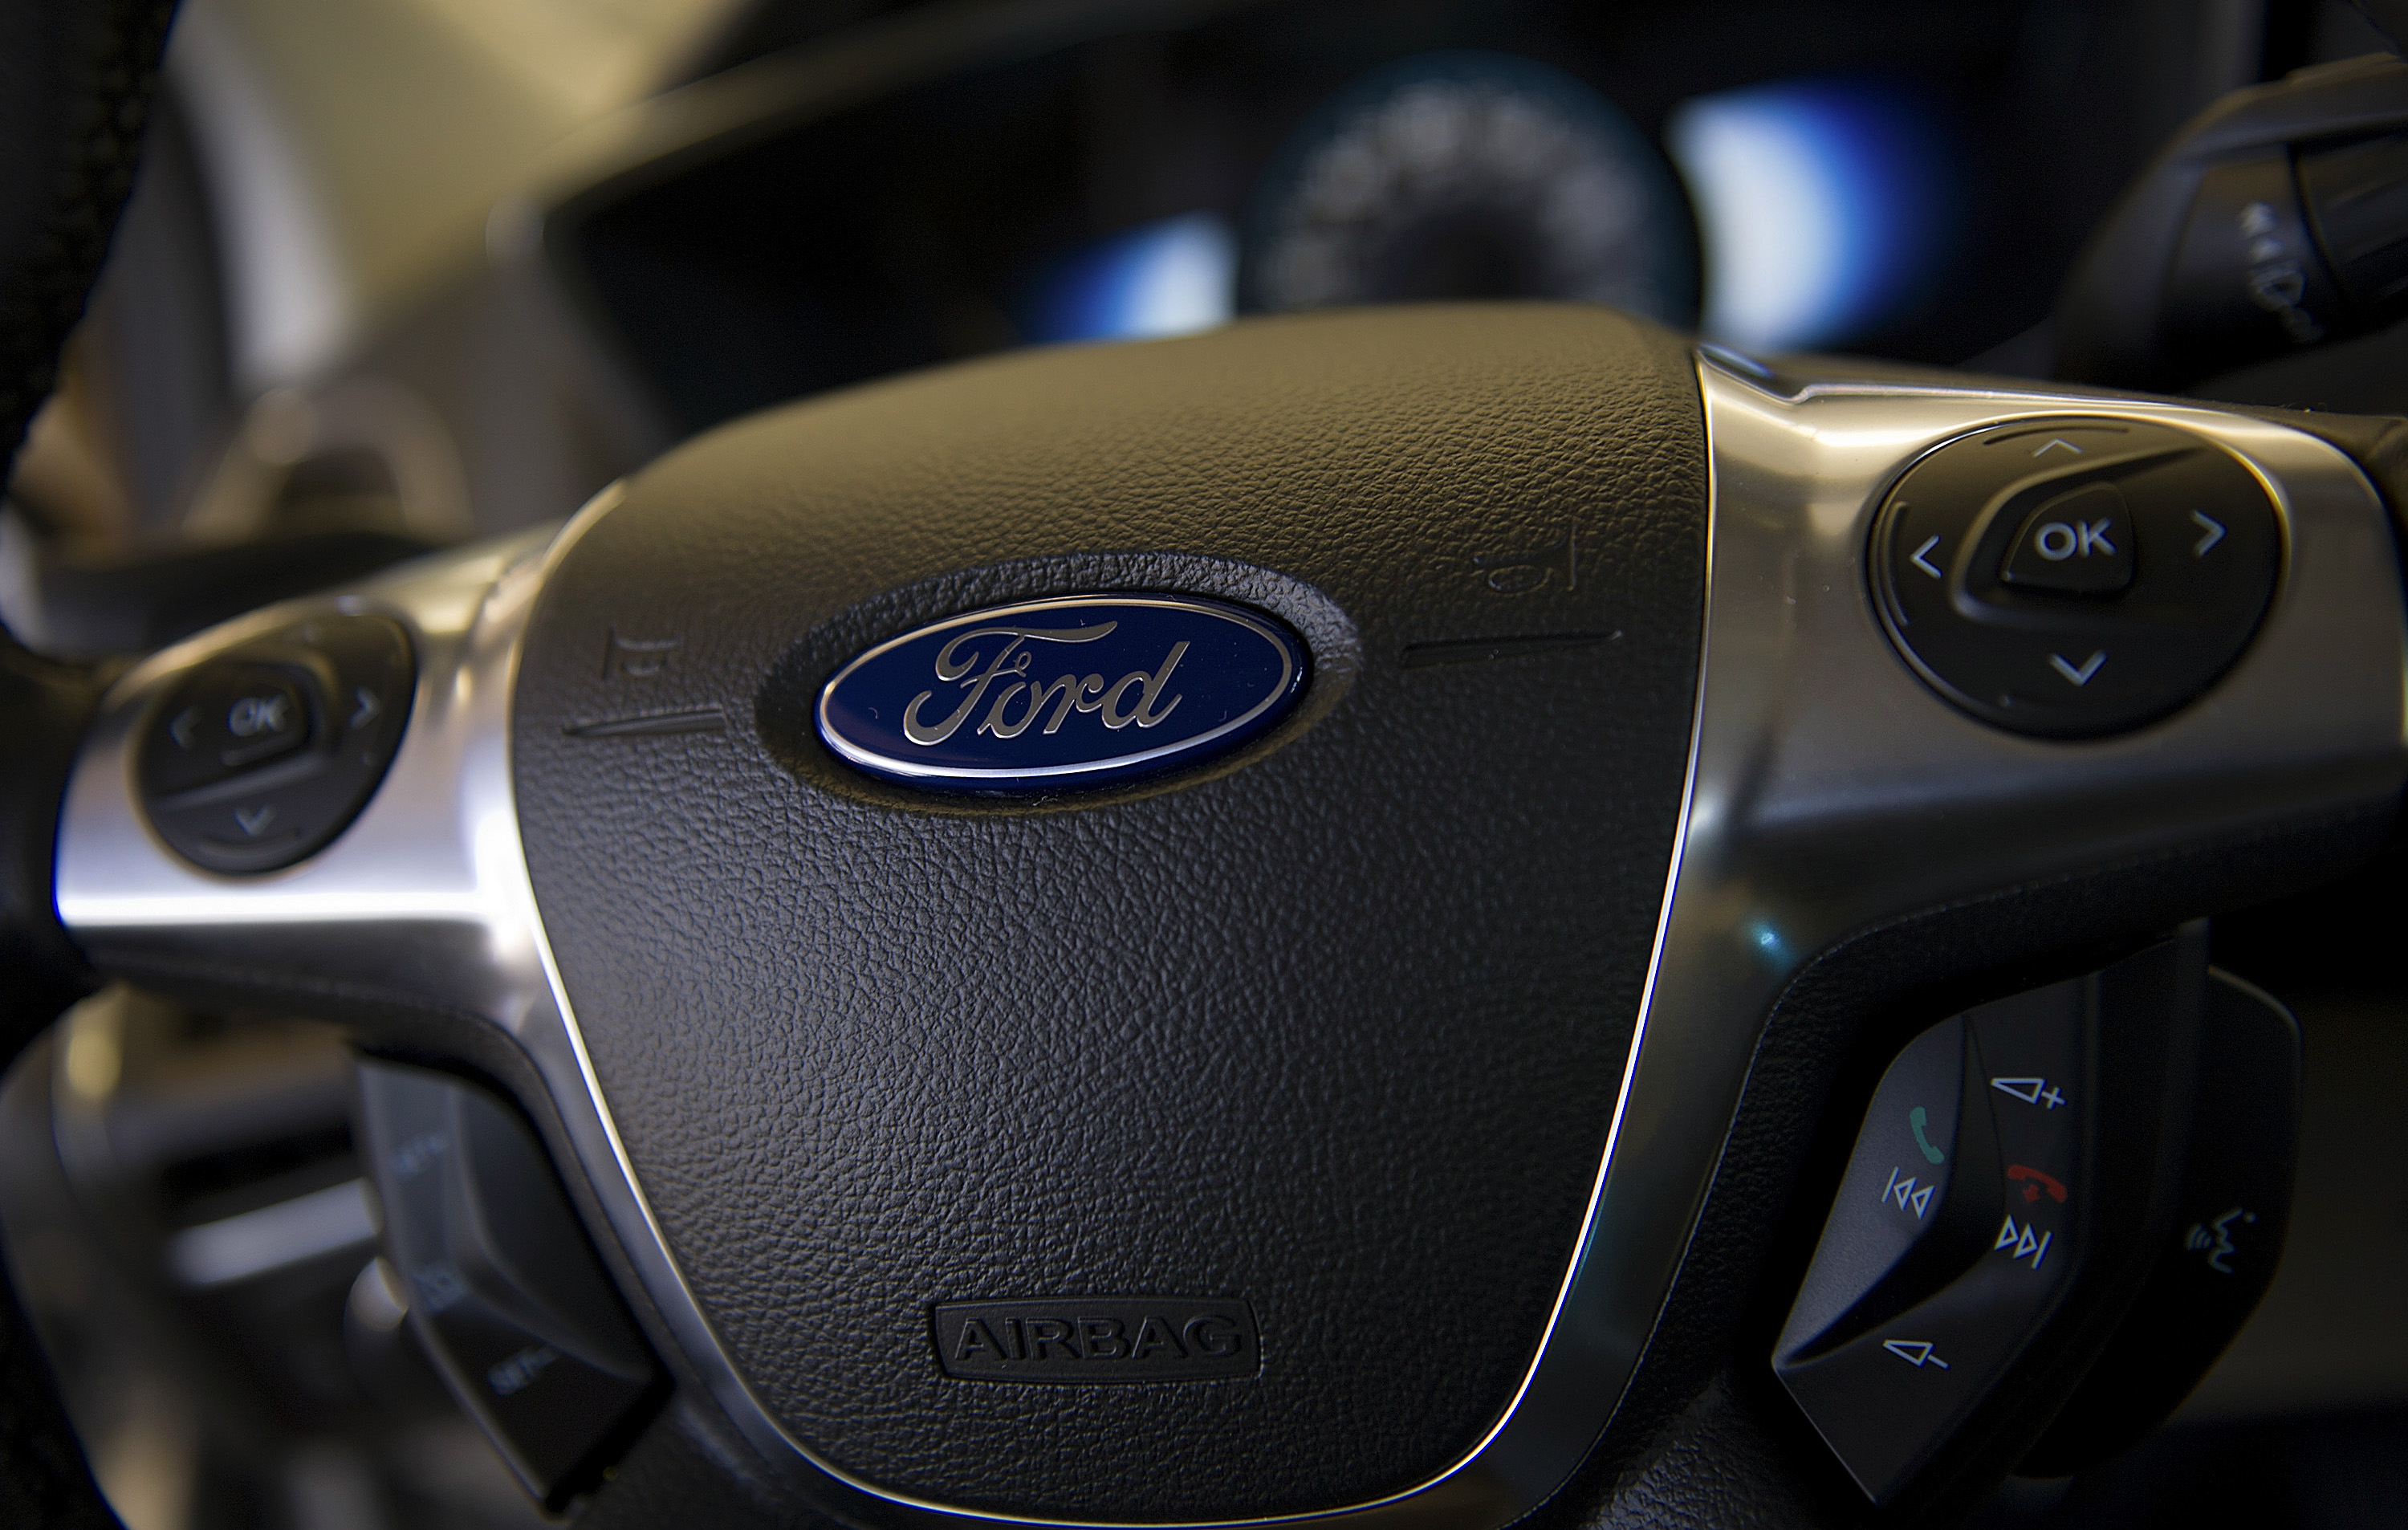 Views Of a Ford Dealership Ahead Of Company Earnings